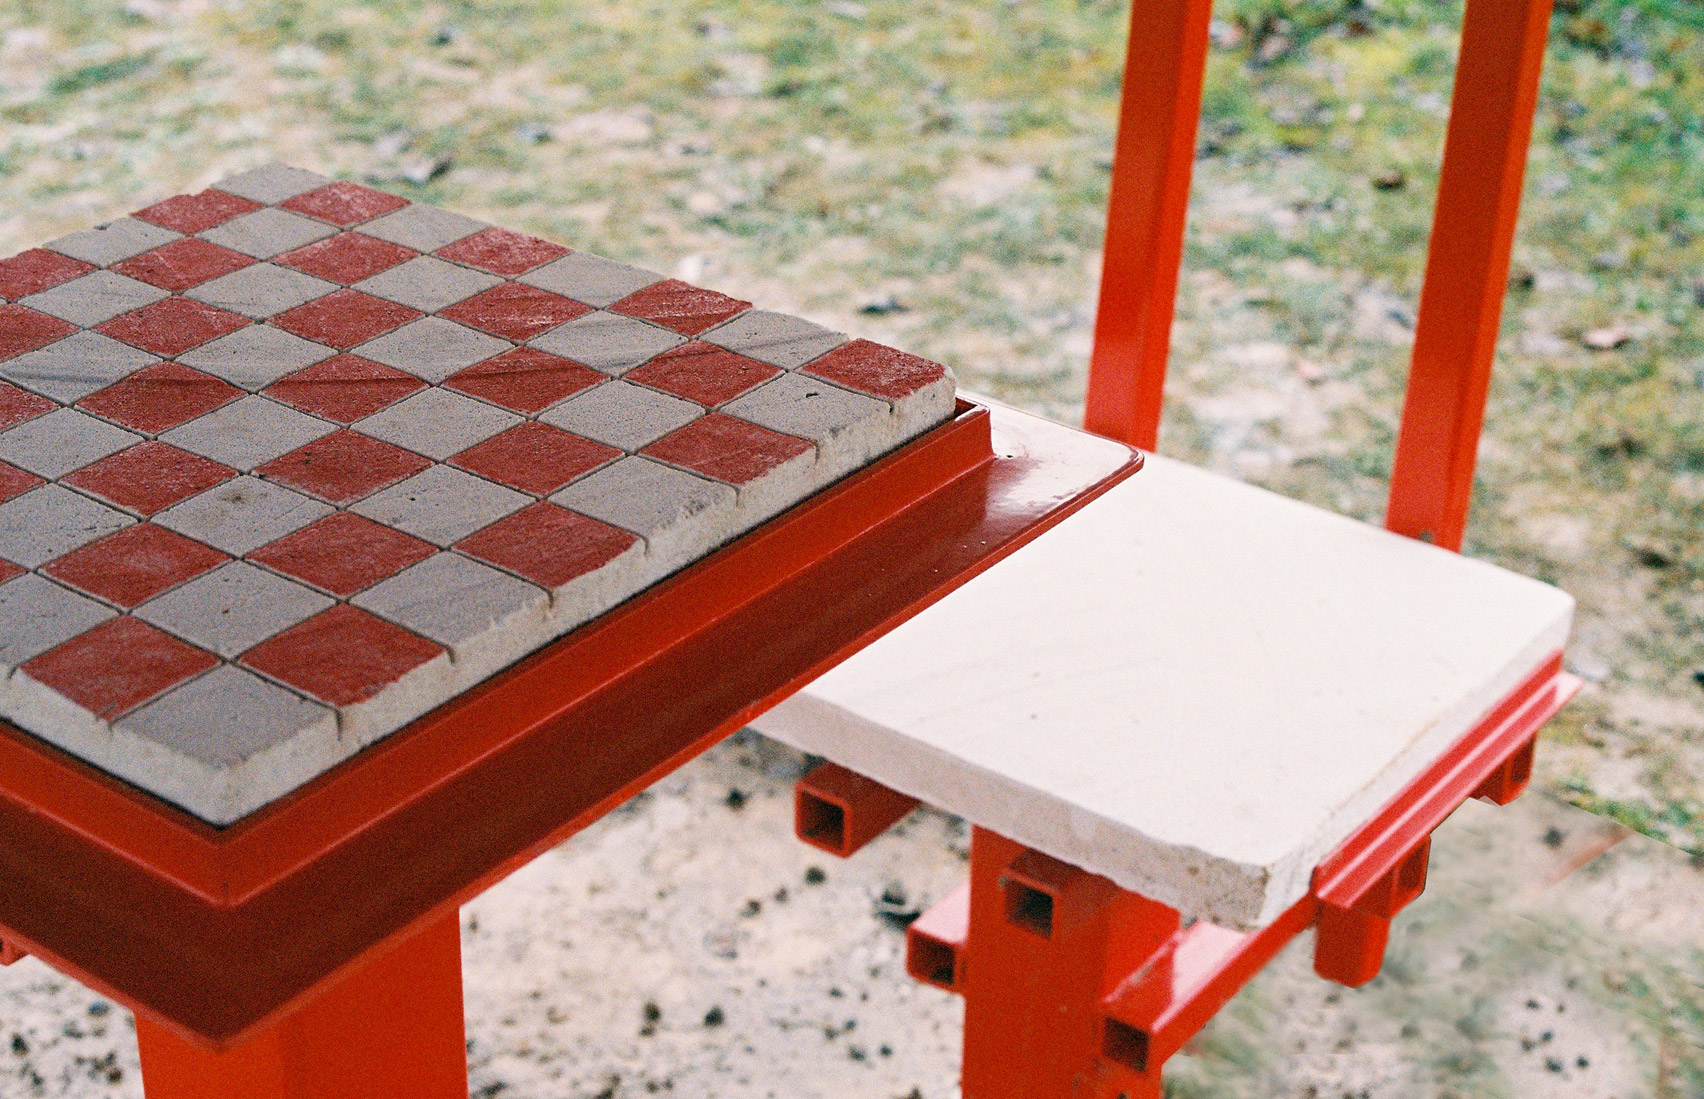 A stone chess board